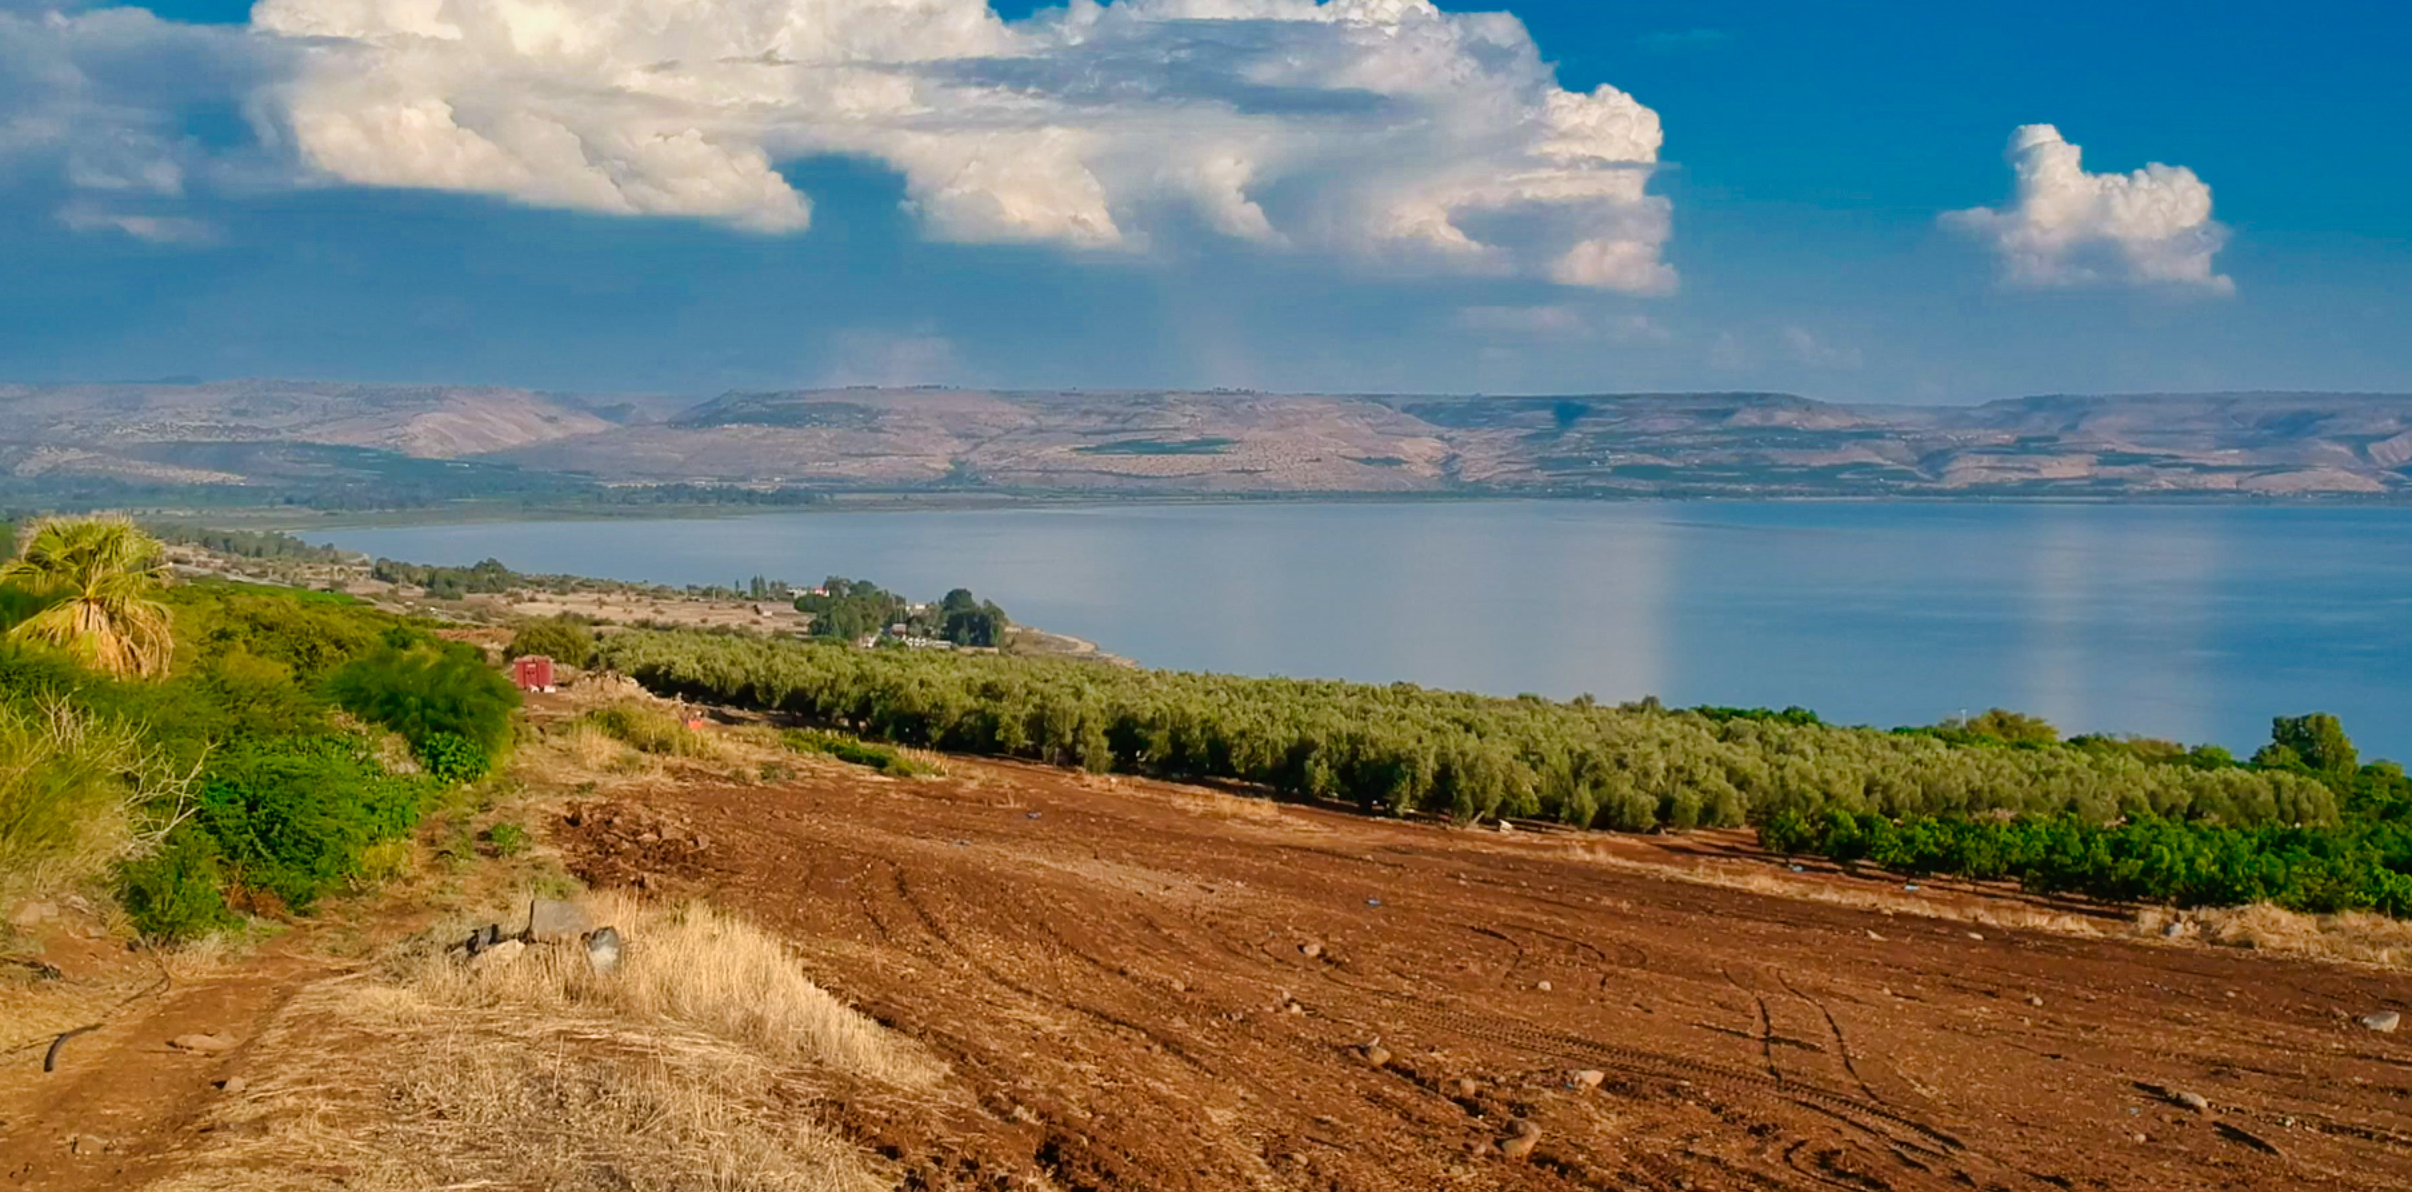 Drone pic of Sea of Galilee